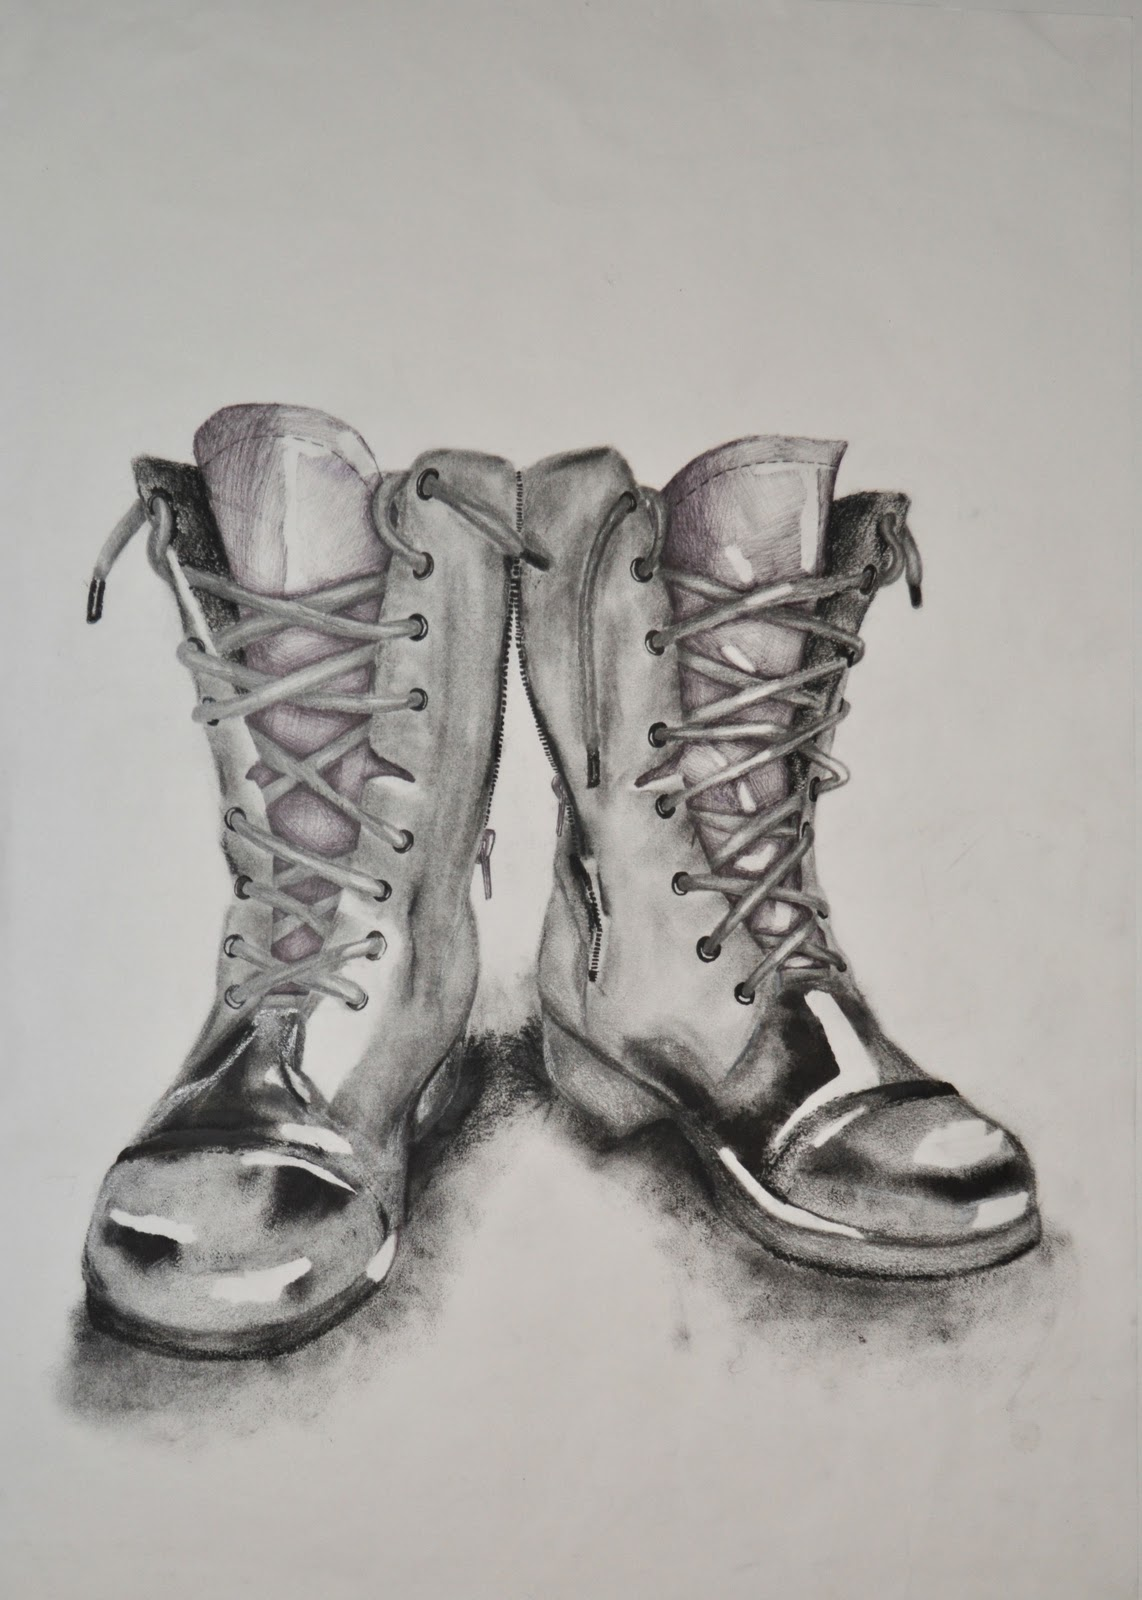 Drawn boots old Con pencil/ drawing Pinterest